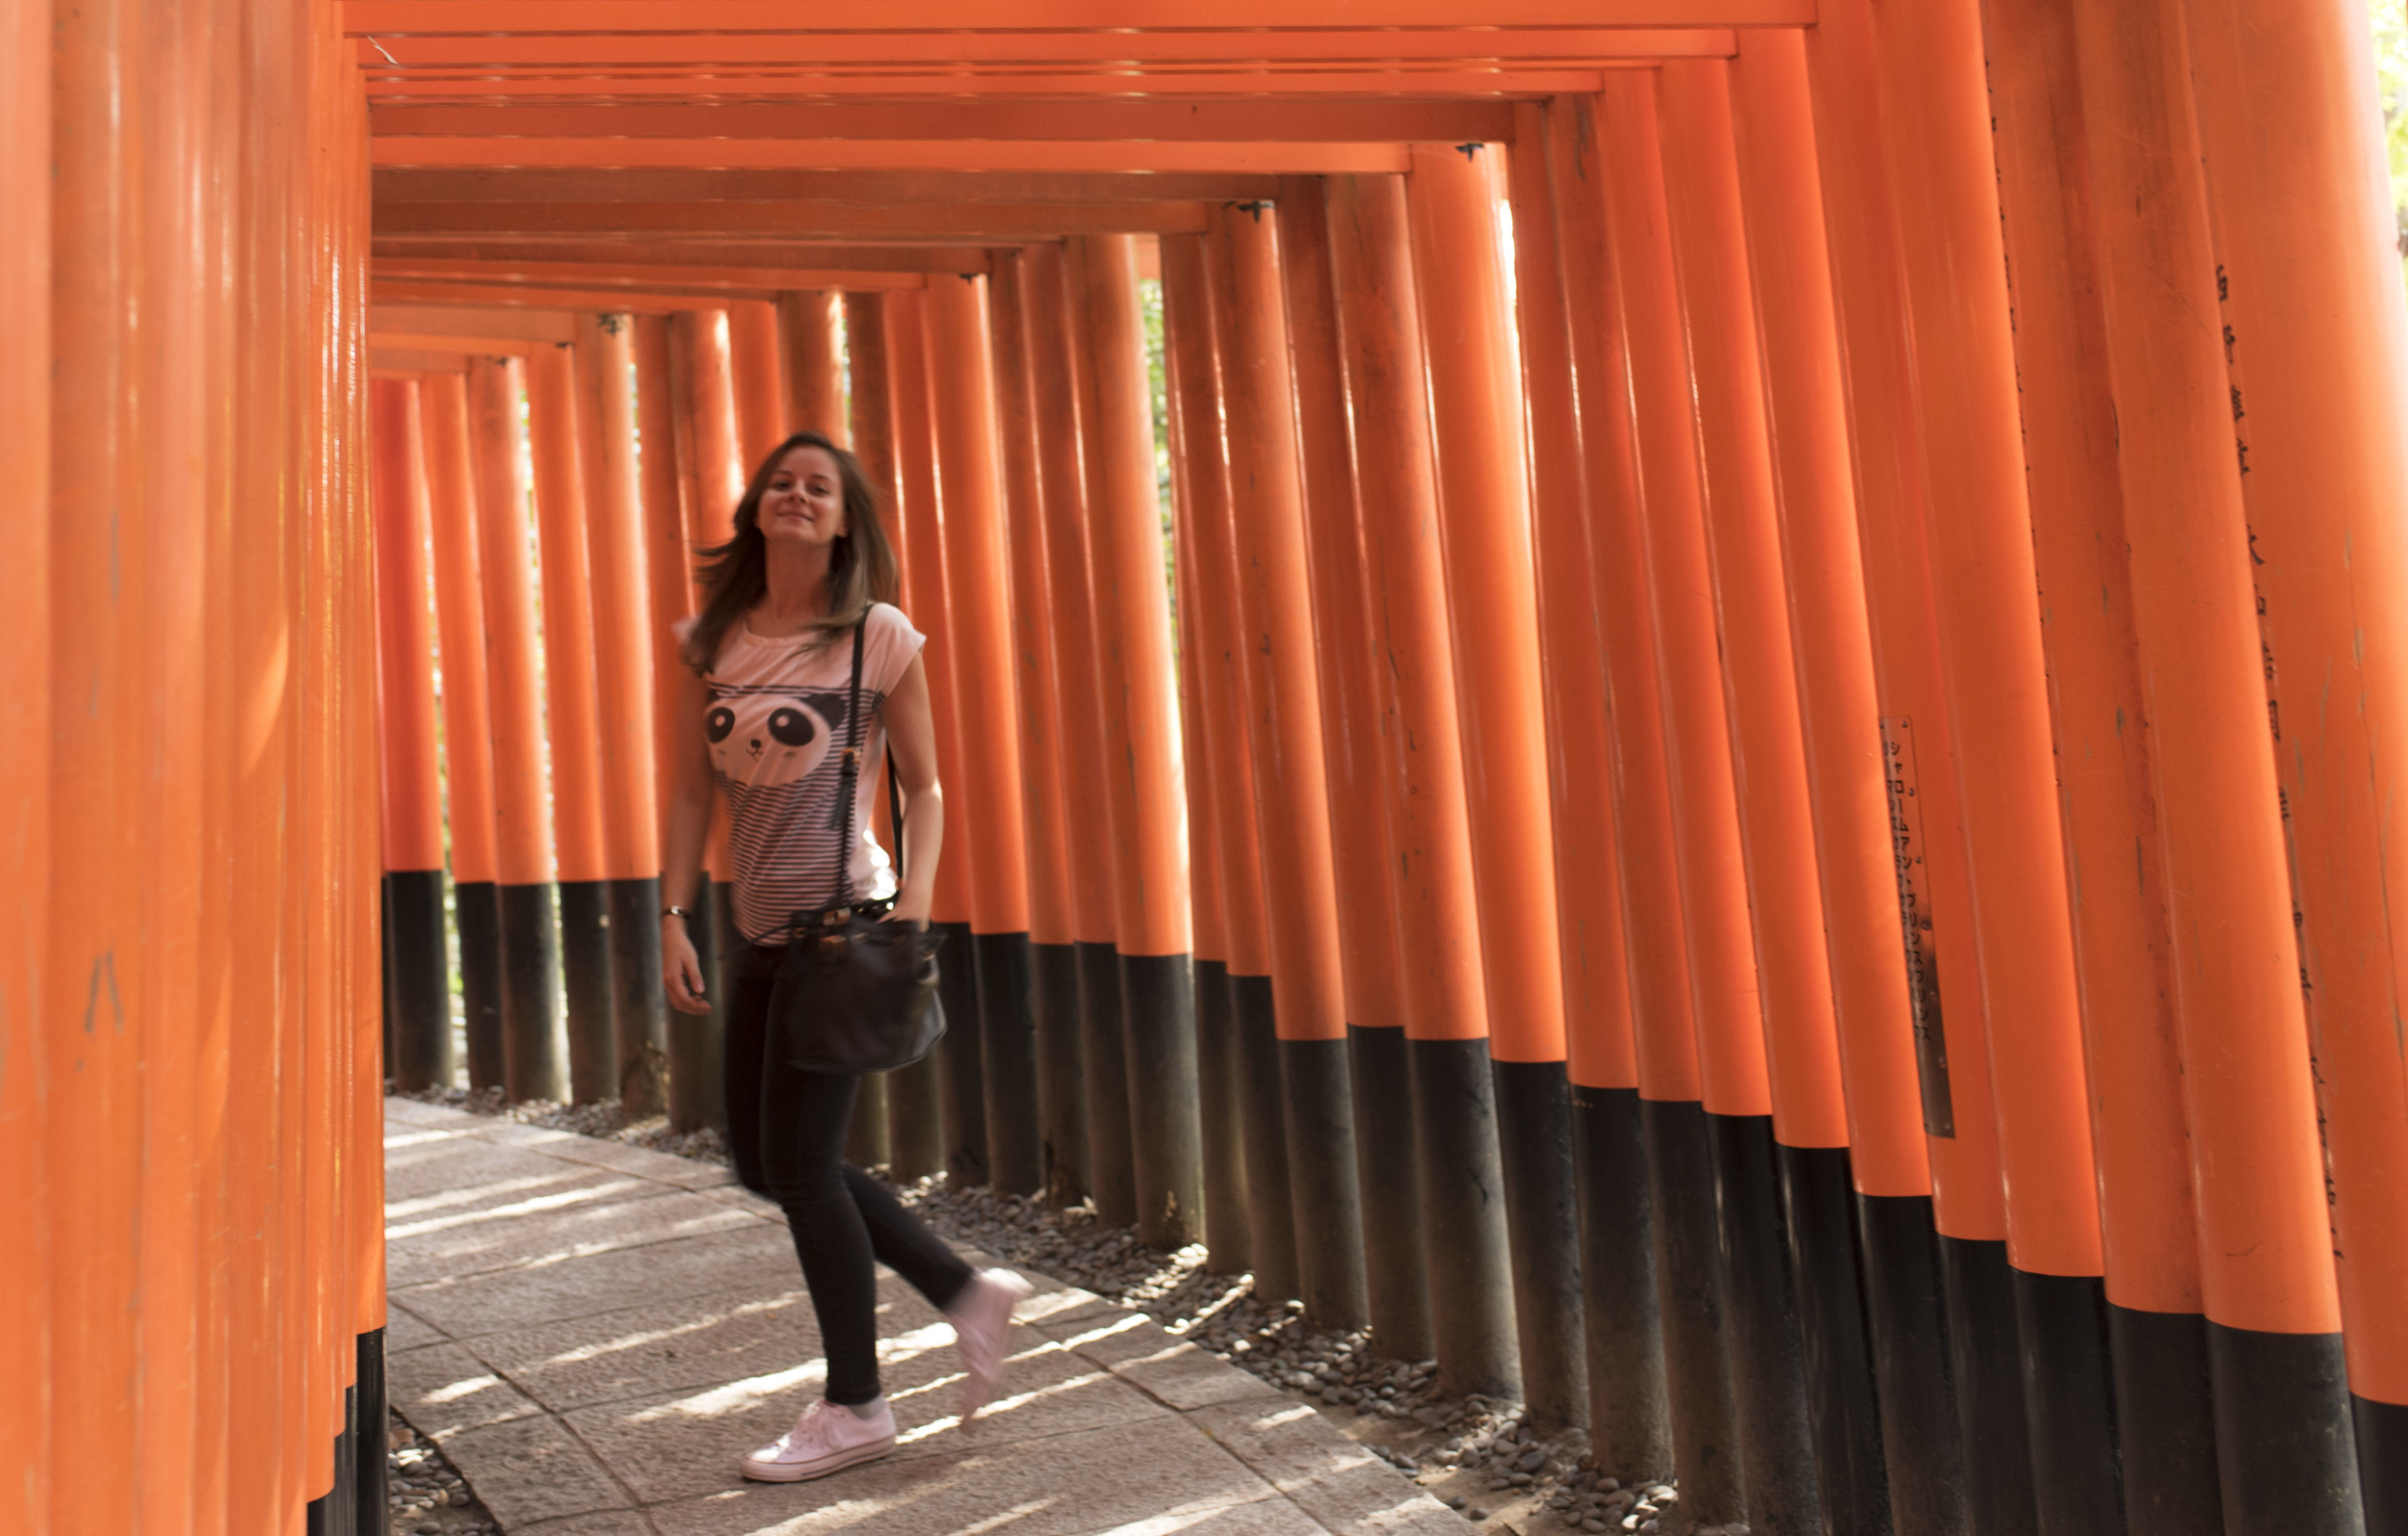 ISO 500, 35mm, f/2.5, 1/50 sec - Fushimi Inari shrine, Kyoto & Terry